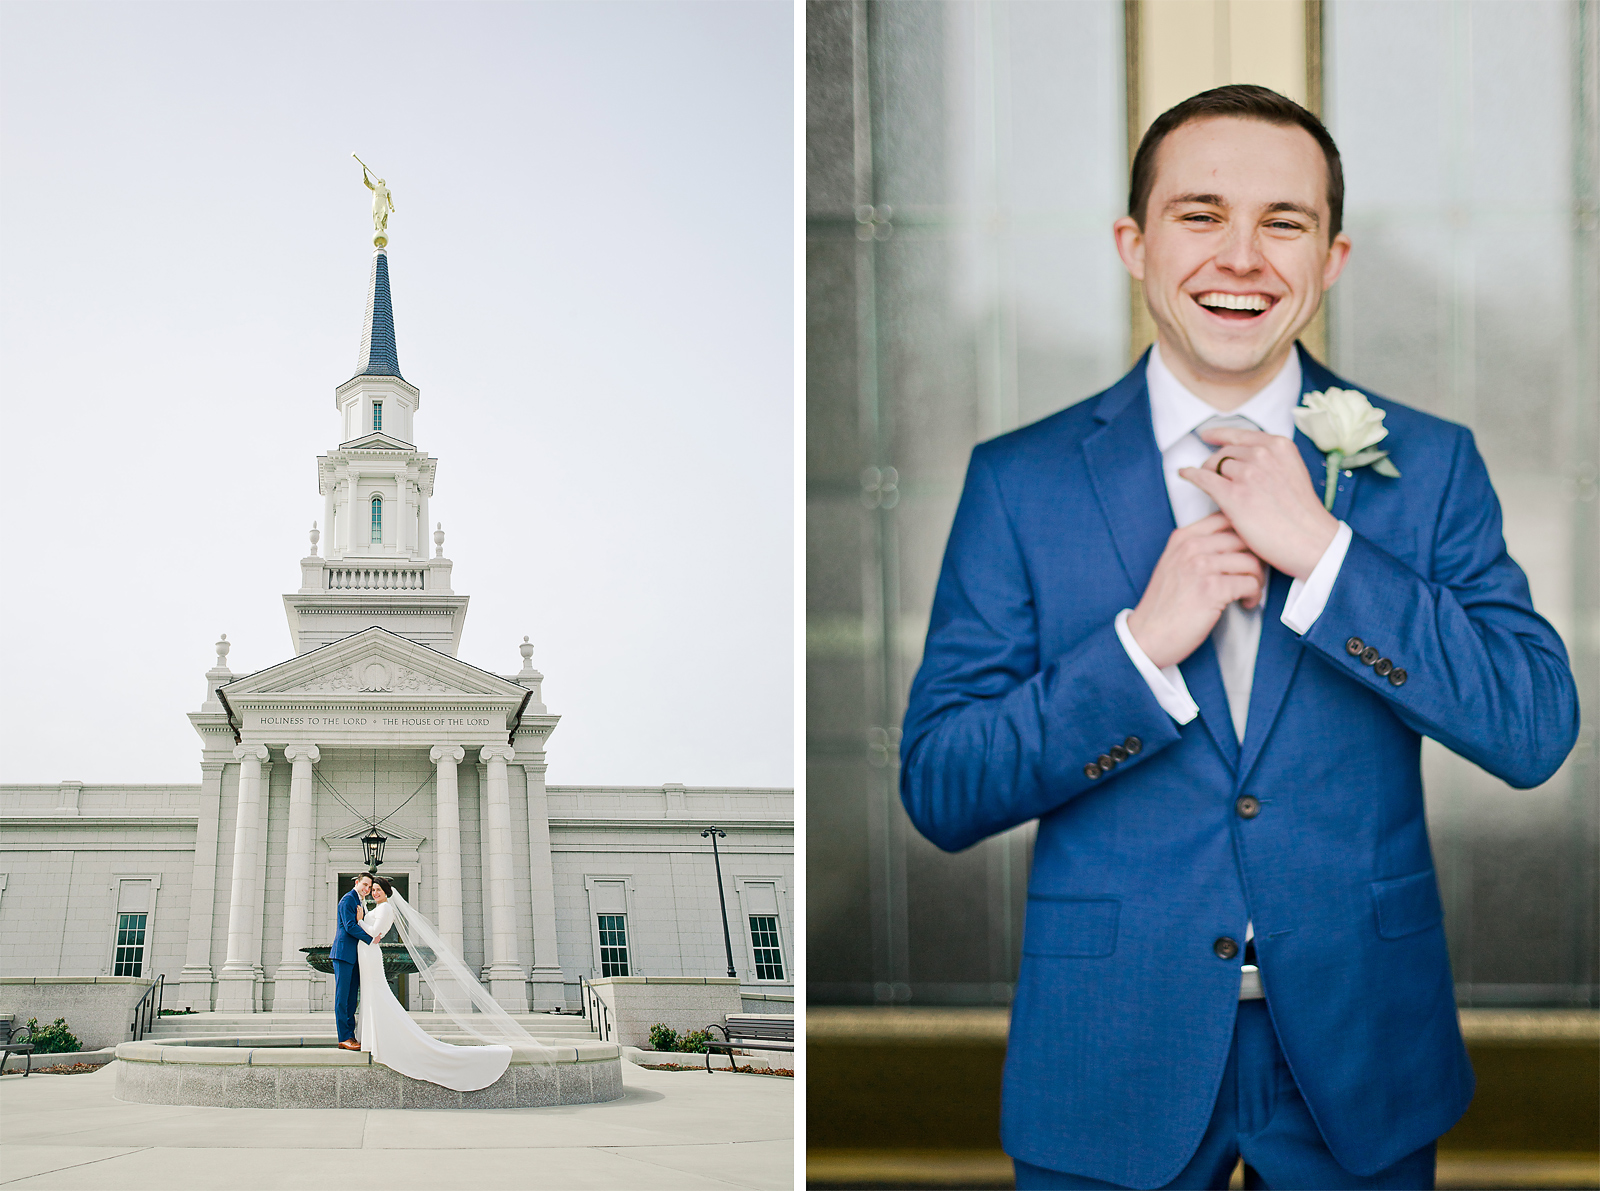 lds_hartford_temple_wedding_023.jpg